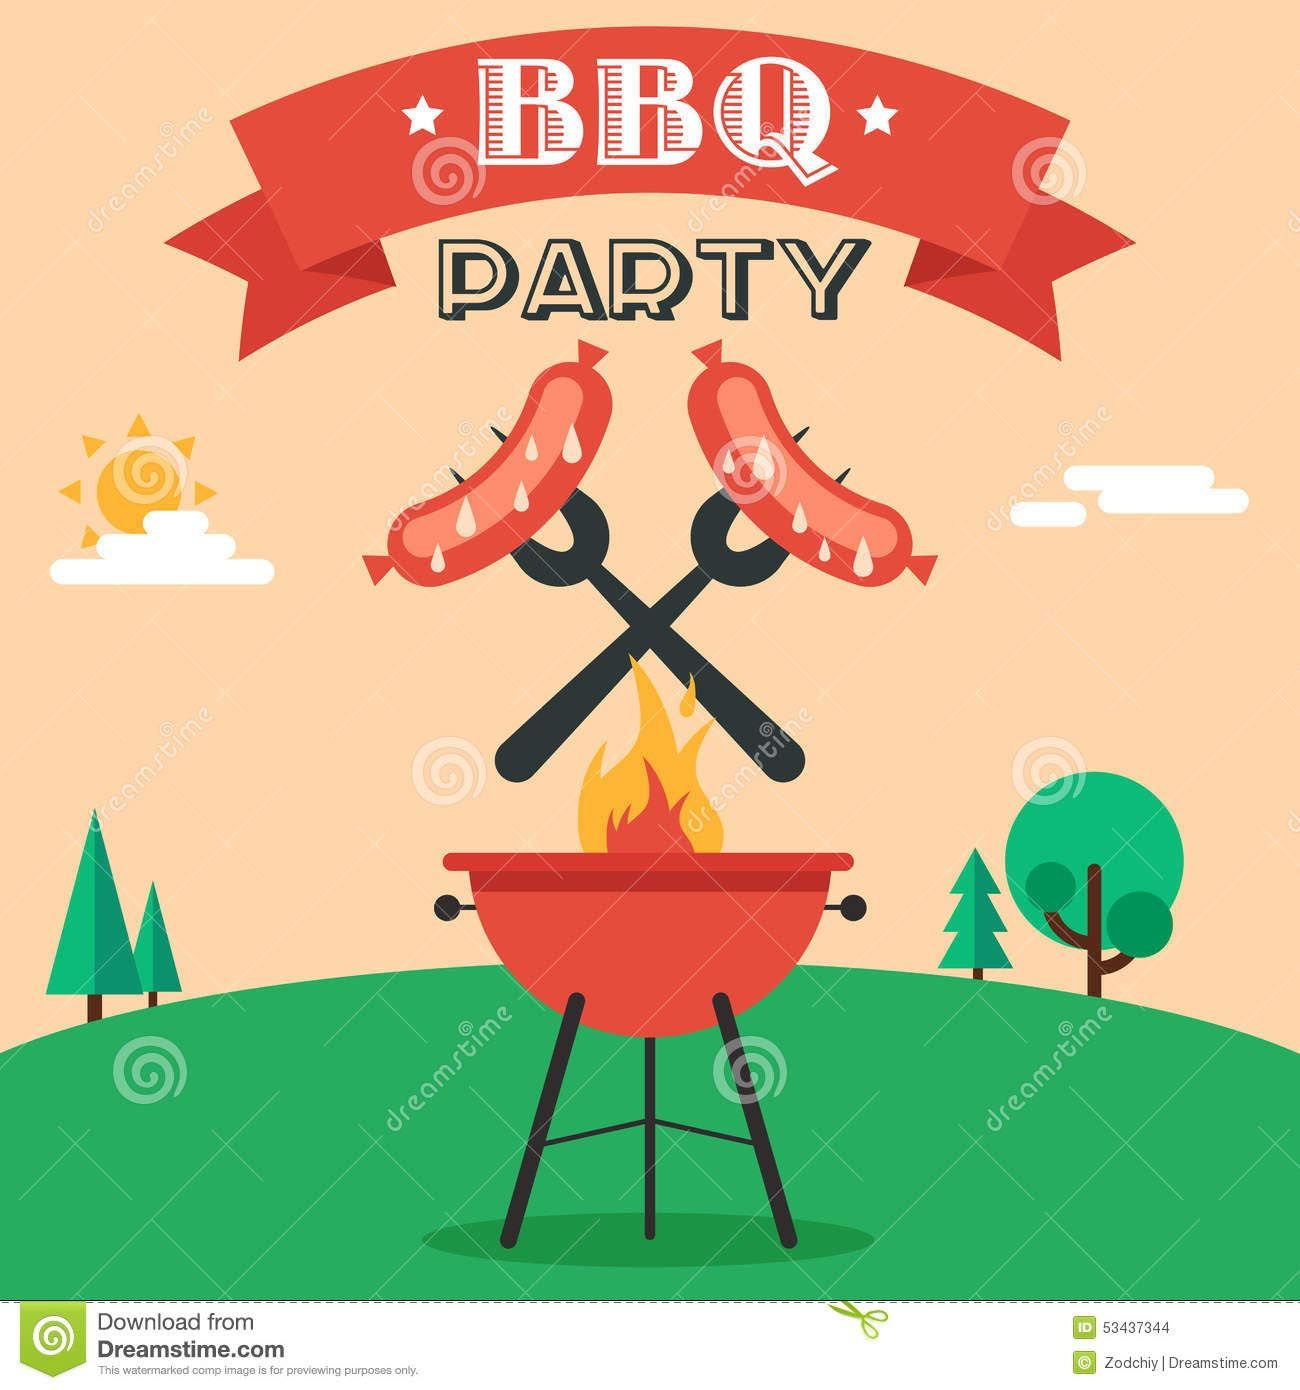 bbq party invitation templates free bbq s grilling in 2018